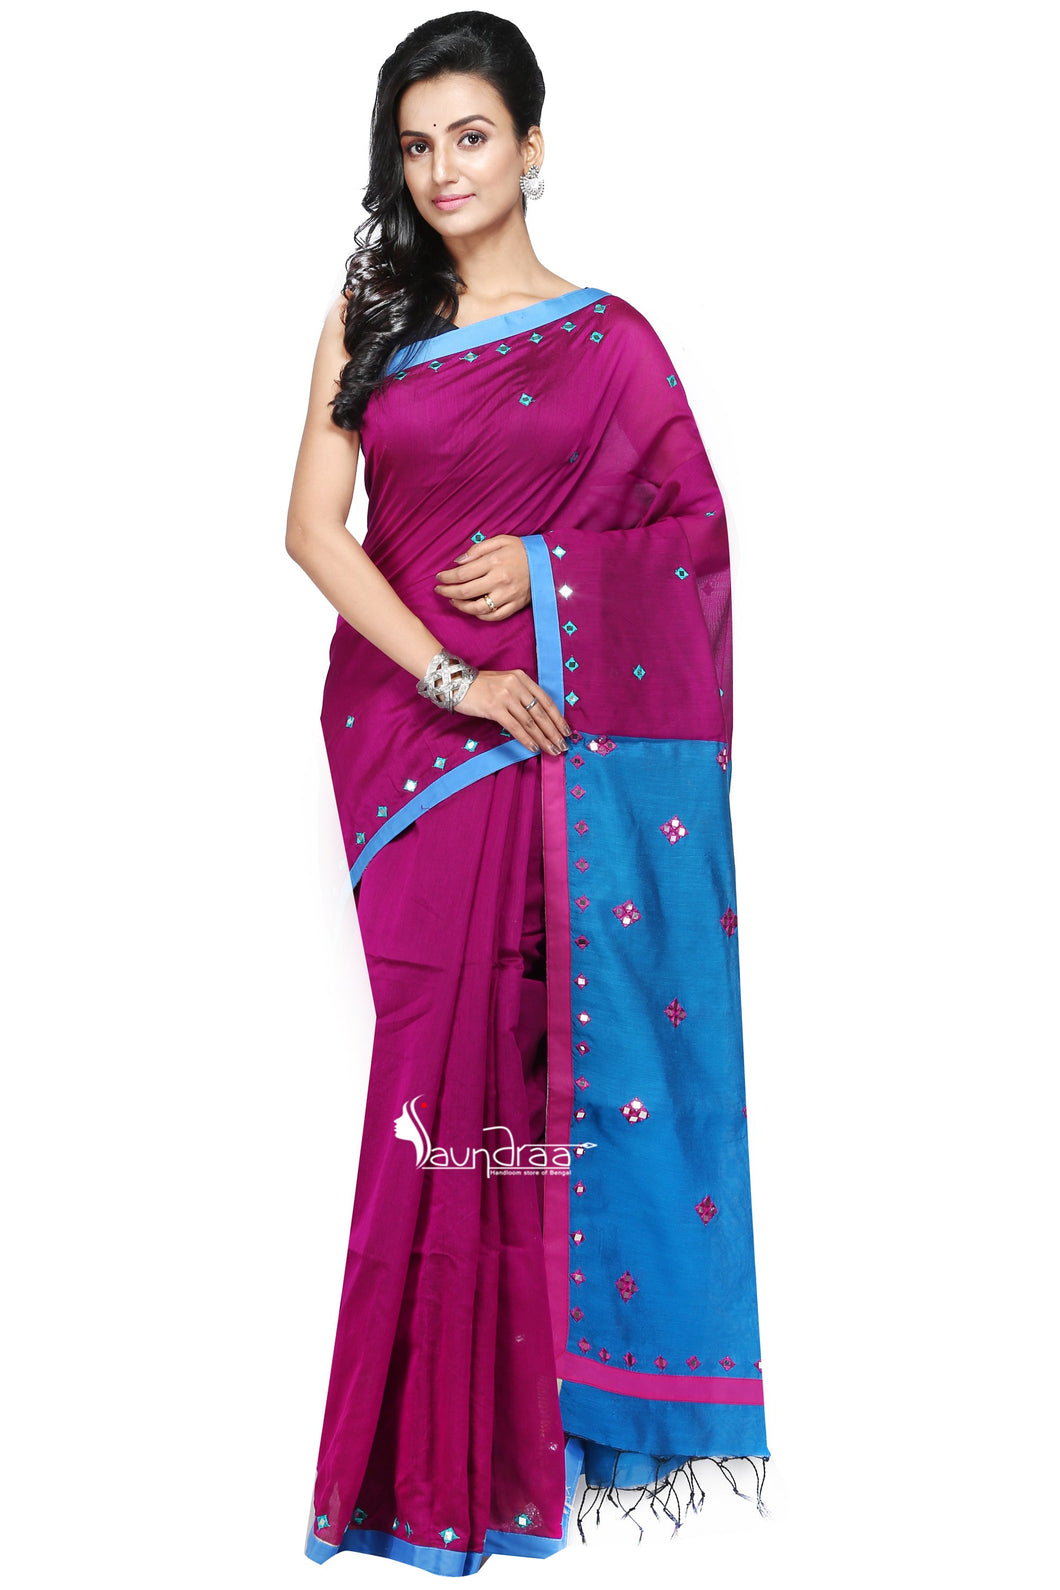 Handloom Needle Crafted Saree - Saree